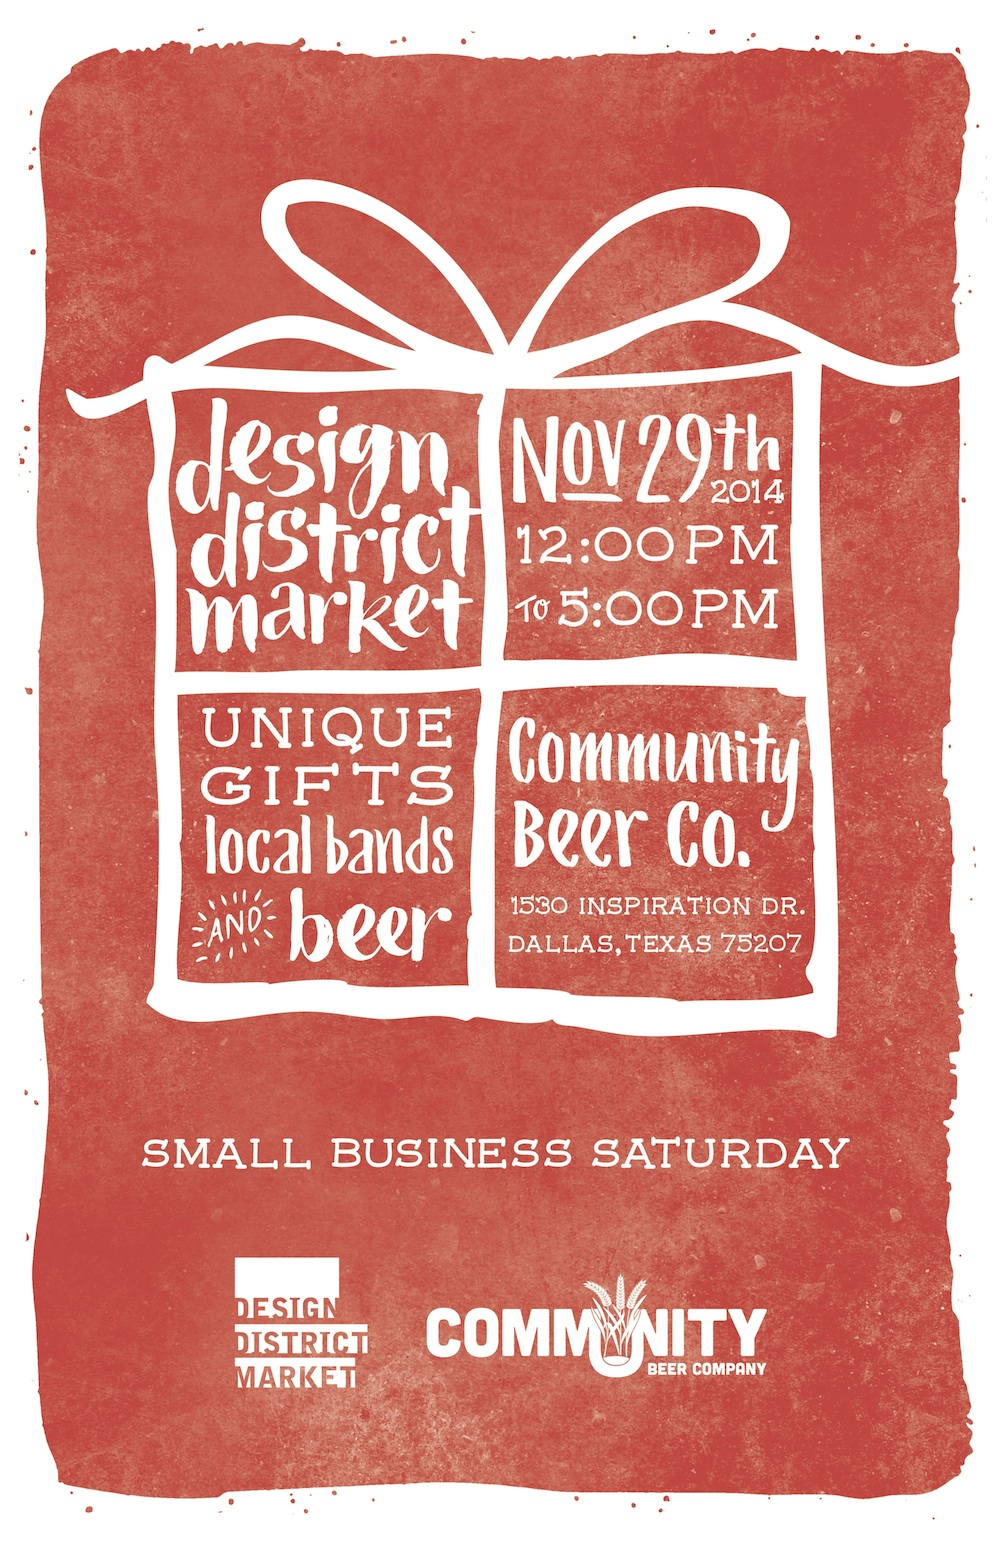 November 29: Small Business Saturday at Community Beer